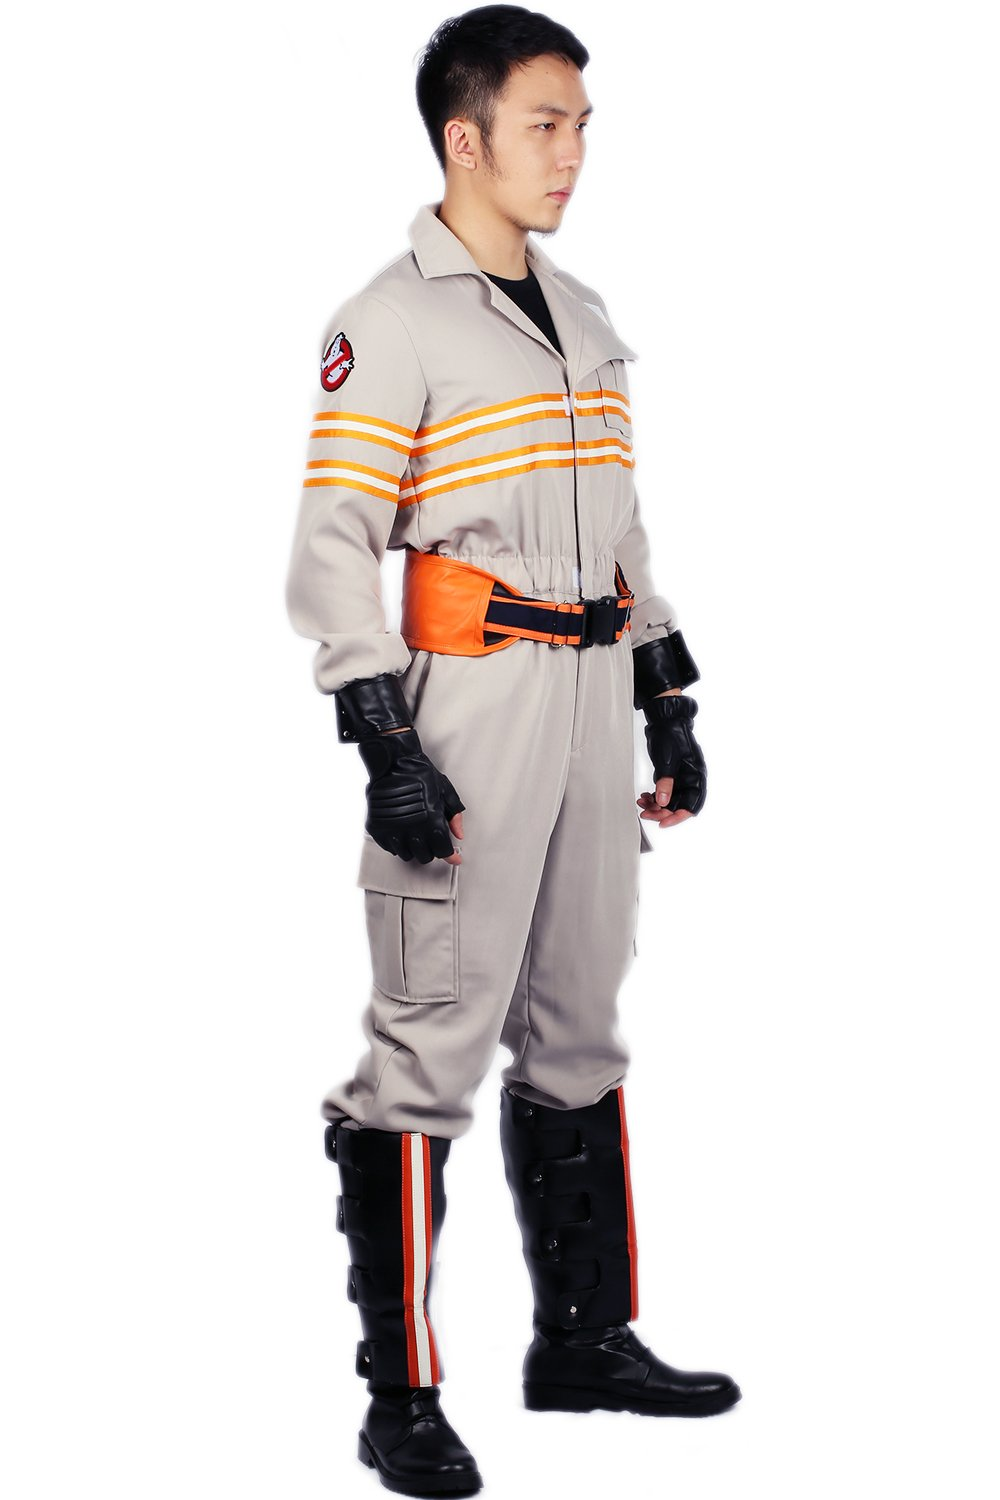 Ghostbusters Costume Deluxe Jumpsuit Embroidery Logo Cotton Halloween Cosplay Xcoser XXL